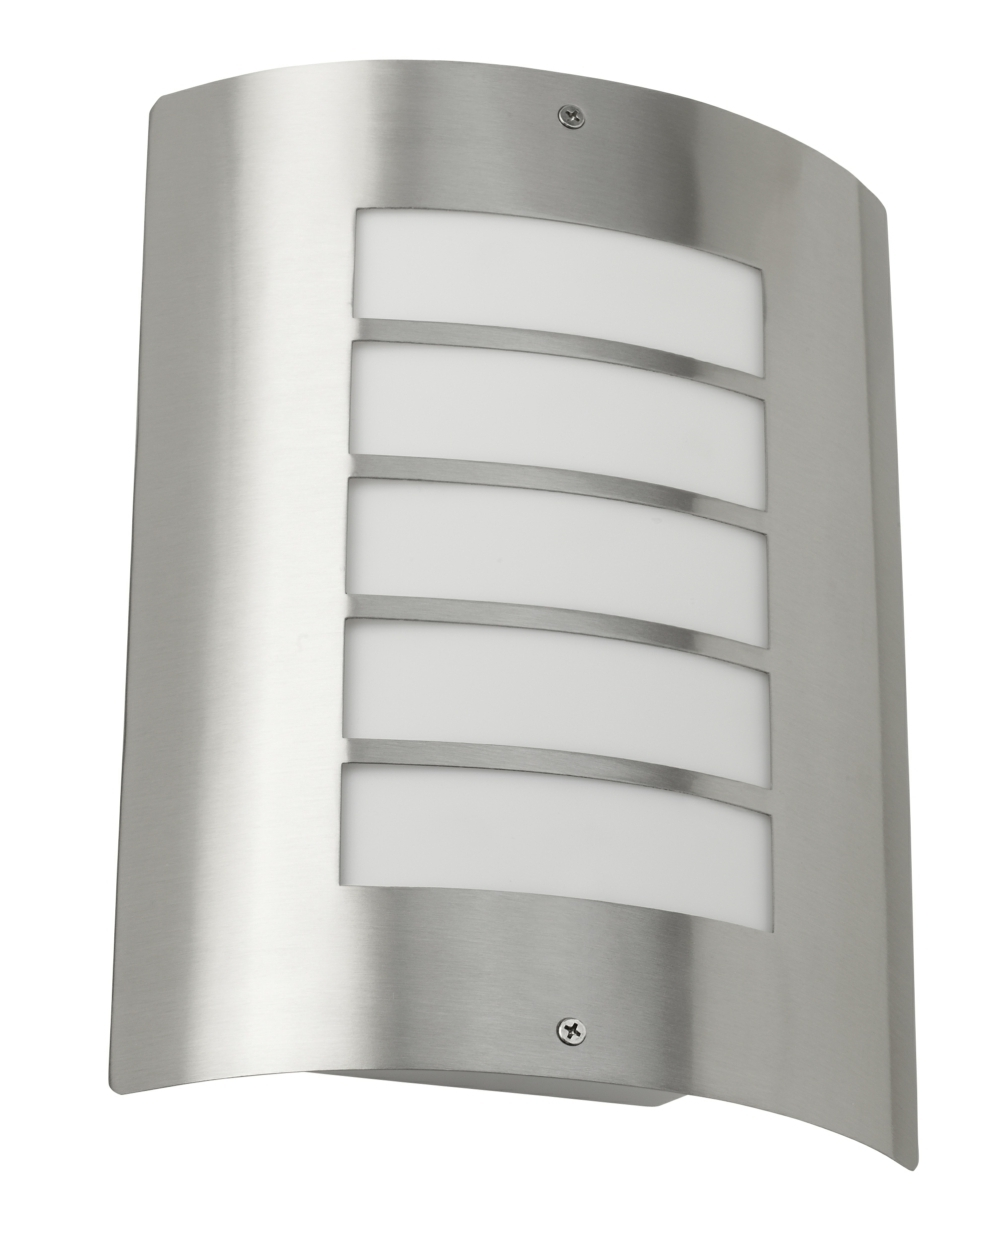 Most Recently Released Curved Outdoor Wall Mounted Lighting Pertaining To Outdoor Wall Mounted Lighting (View 11 of 20)